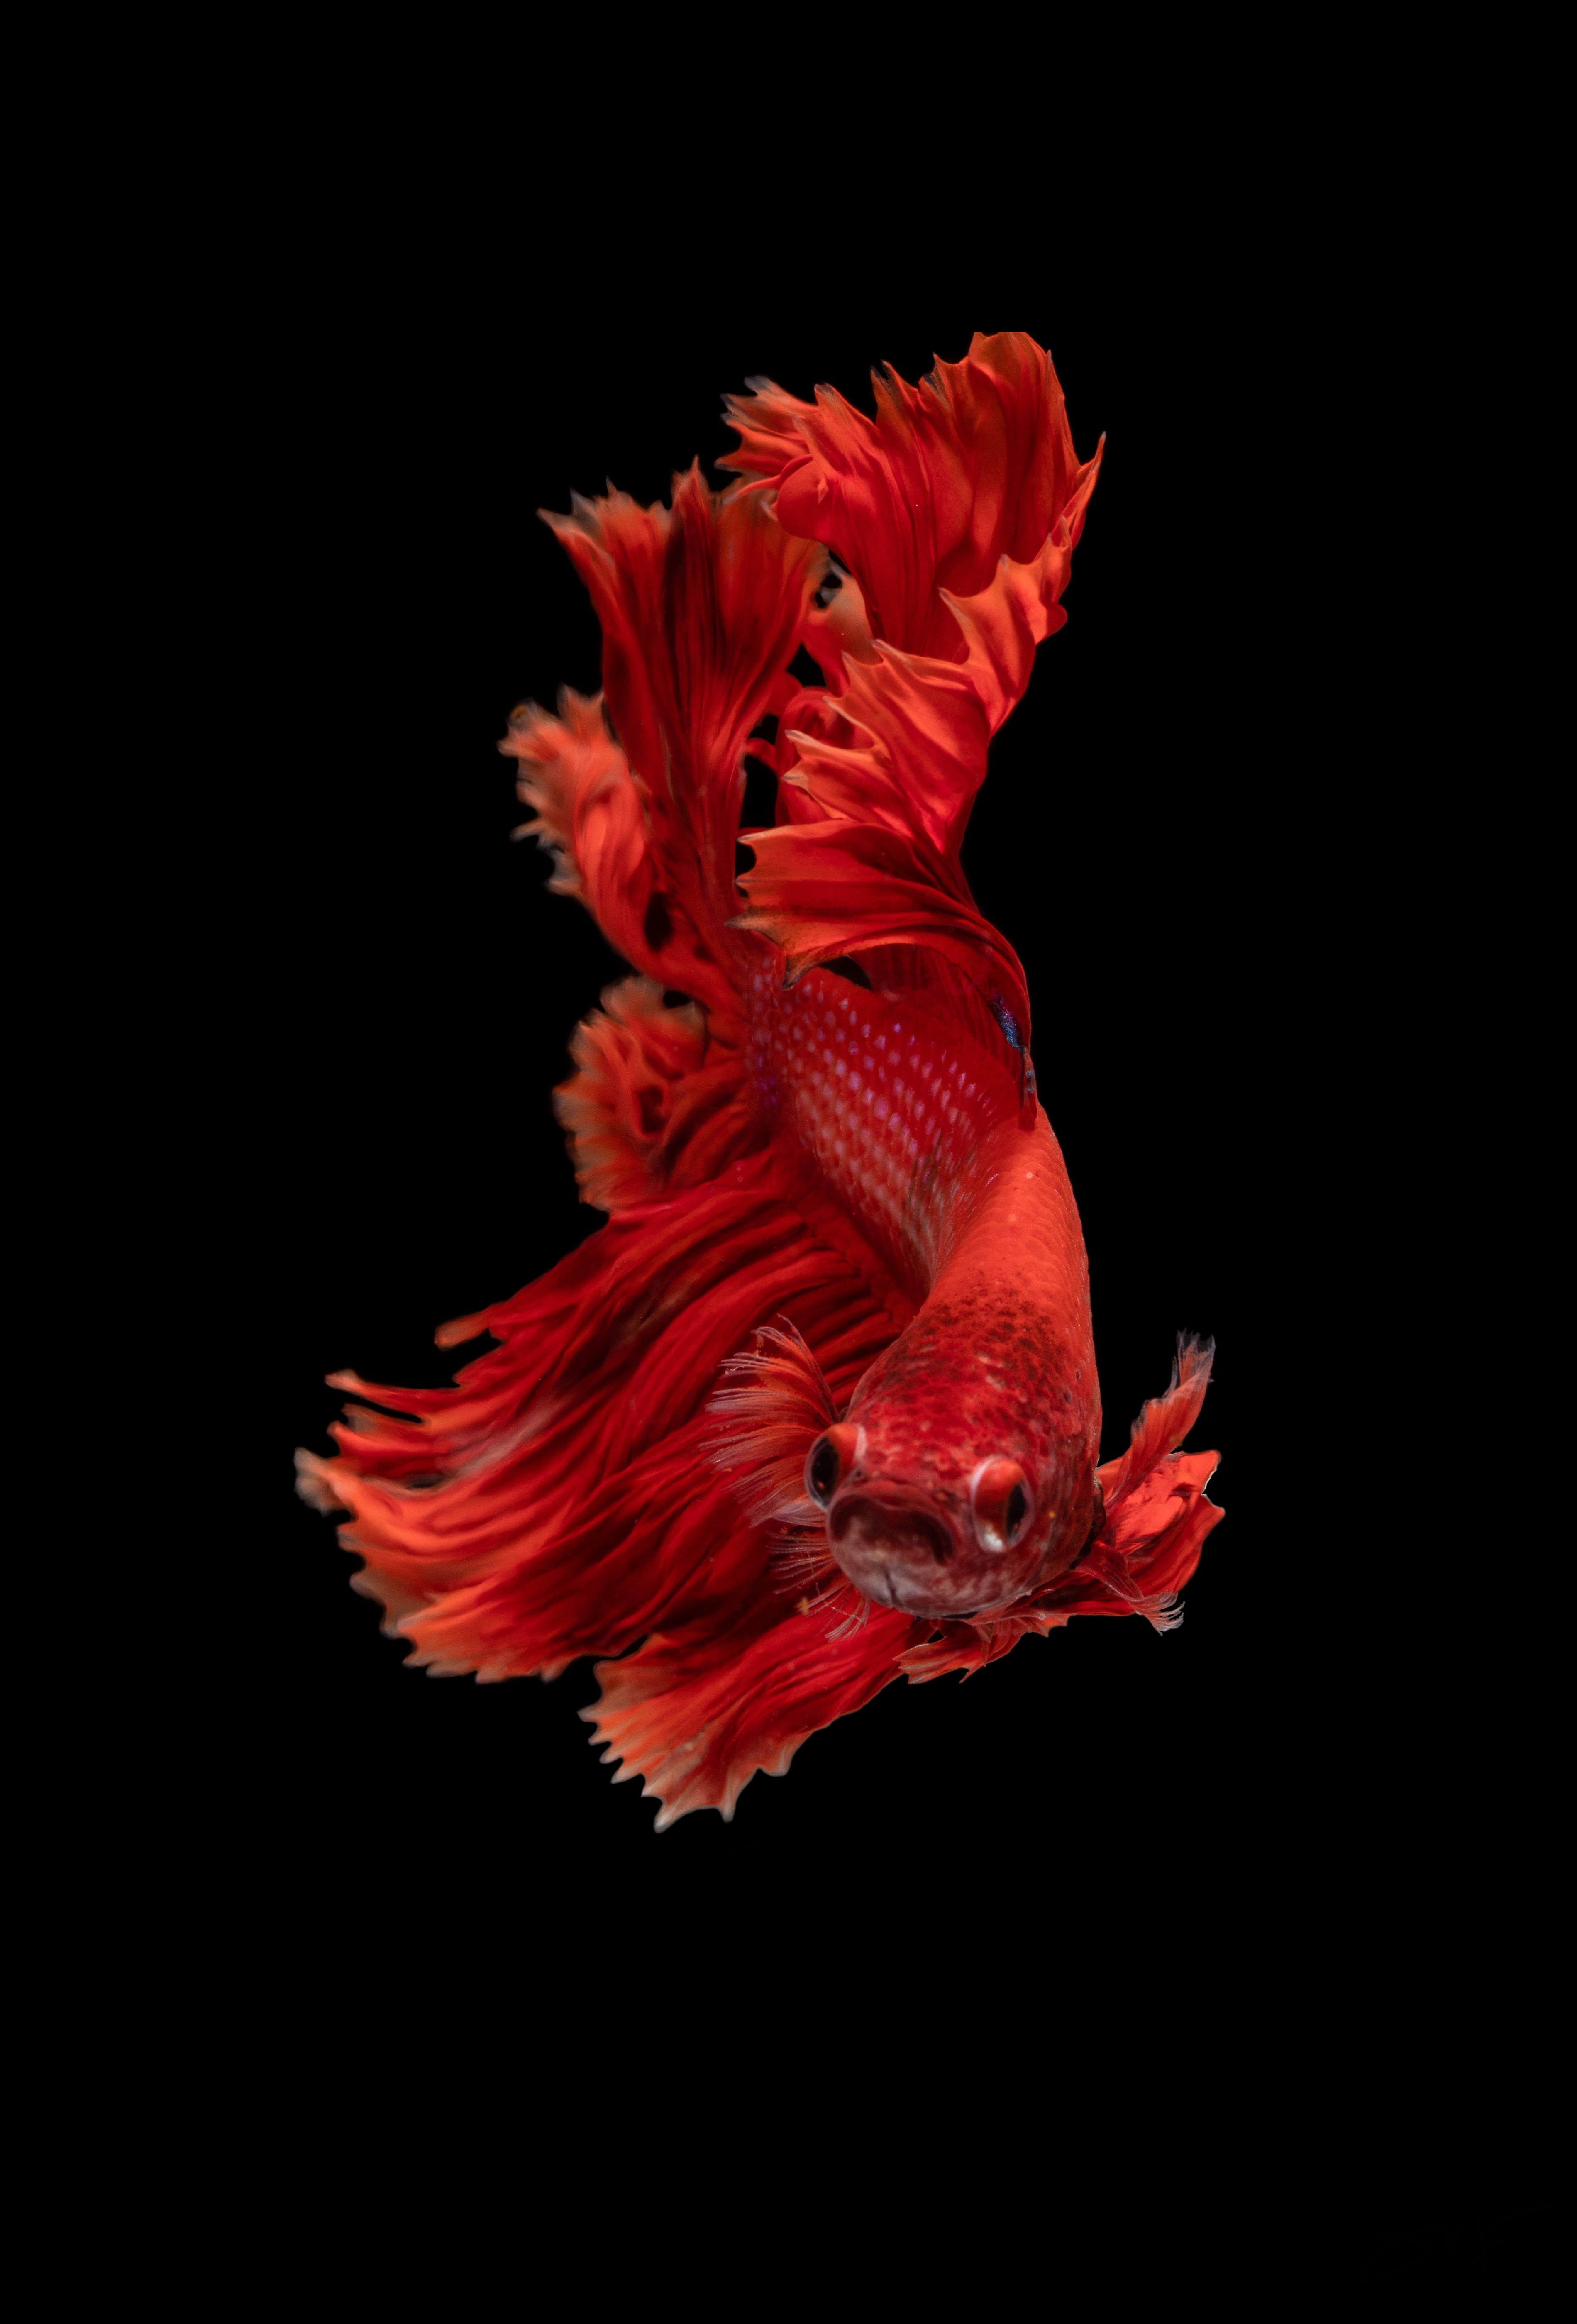 61777 Screensavers and Wallpapers Aquarium for phone. Download Animals, Underwater World, Aquarium, Small Fish, Fishy pictures for free